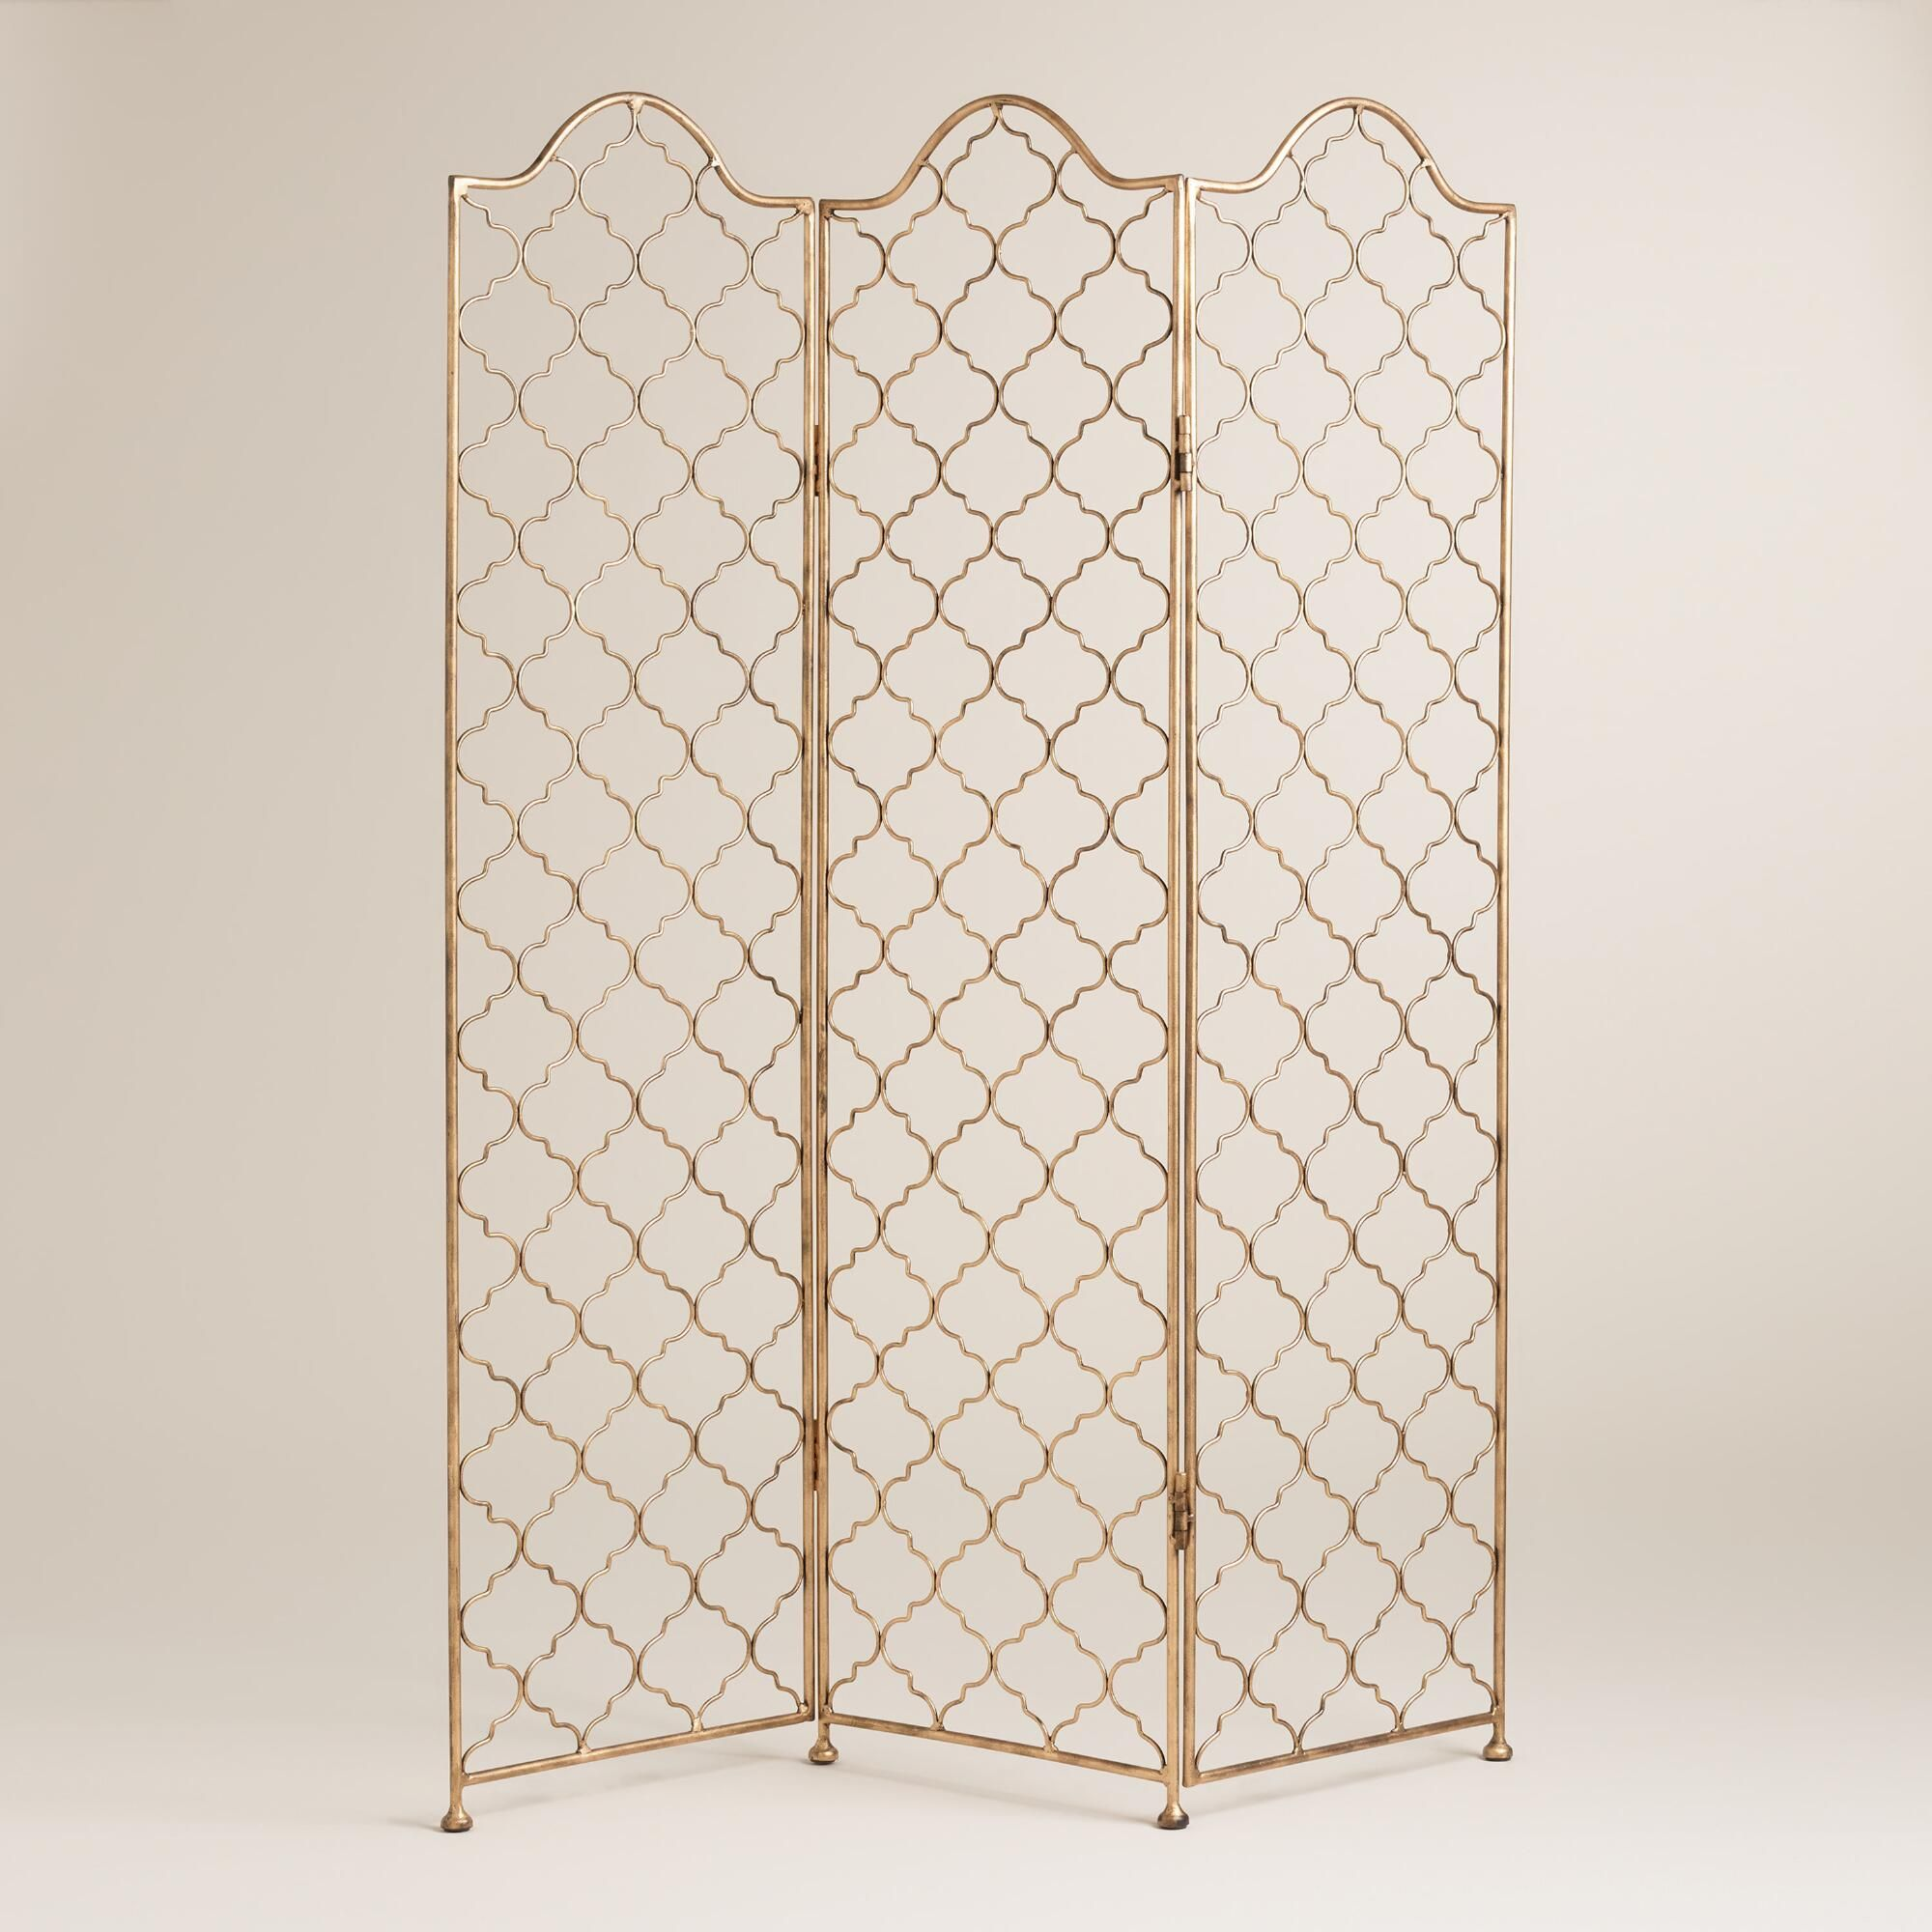 An eclectic room divider our boho chic screen features three hinged